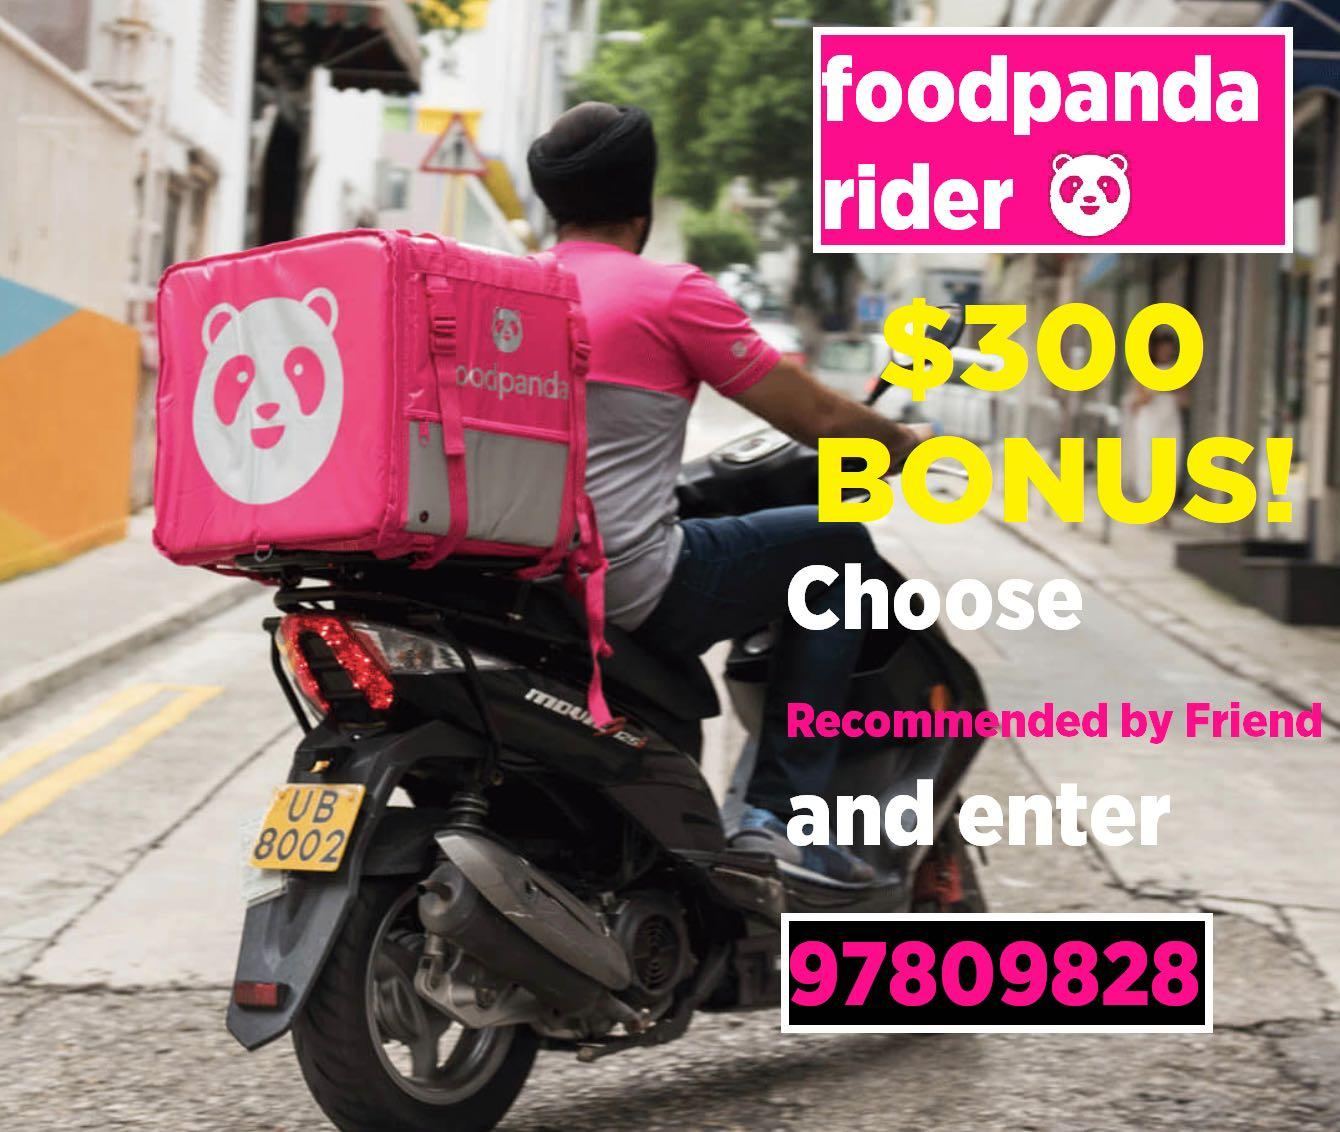 Foodpanda Refer Delivery Rider $300 Bonus - Up to $35/h